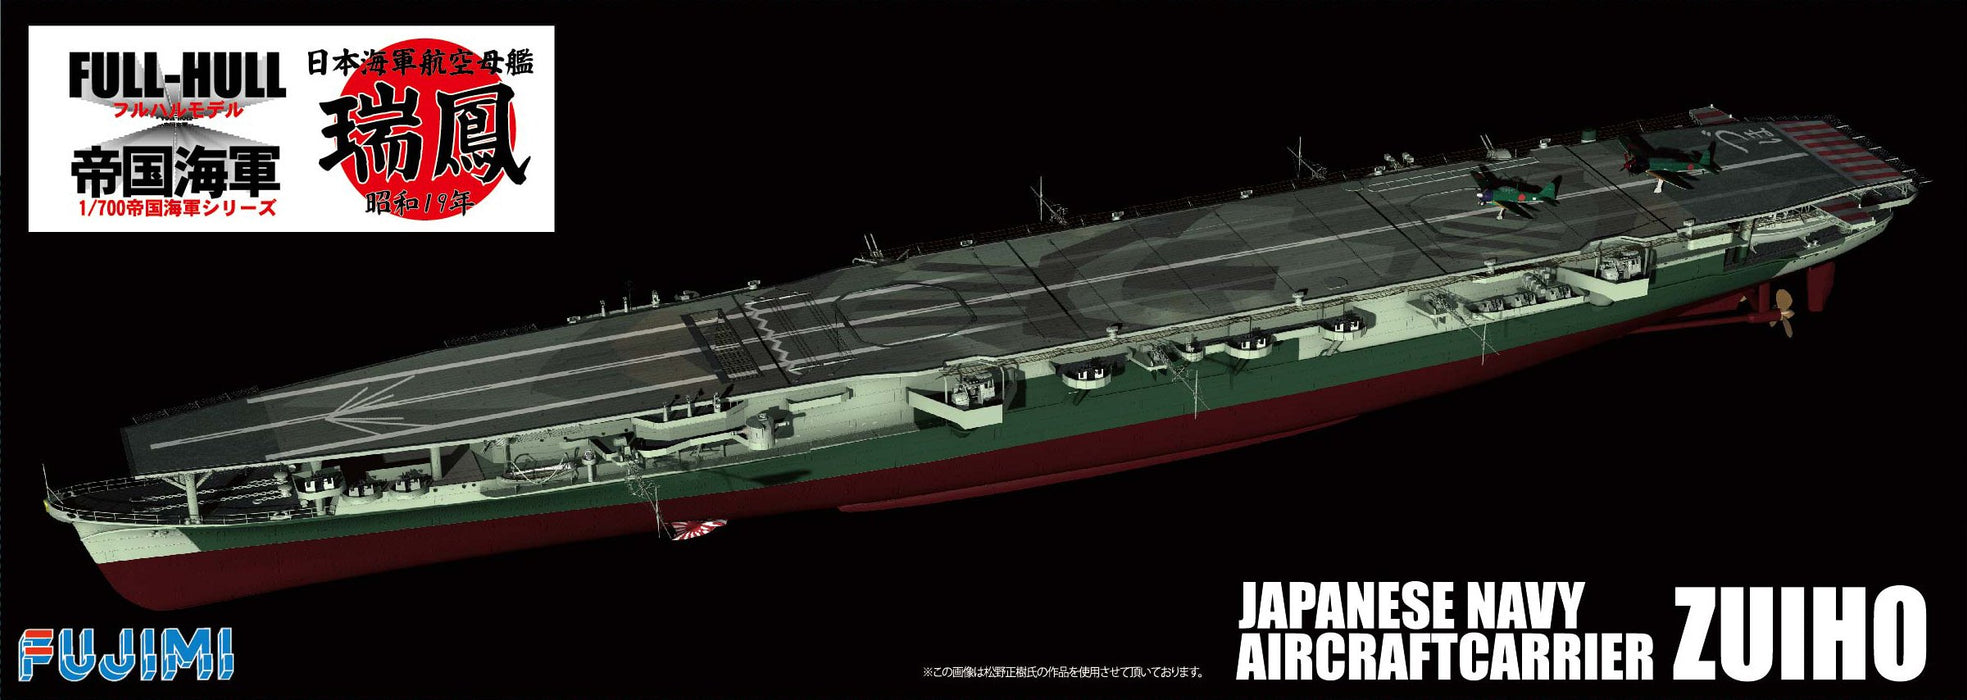 Fujimi 421926 1:700 'Zuiho' Japanese Navy Aircraft Carrier